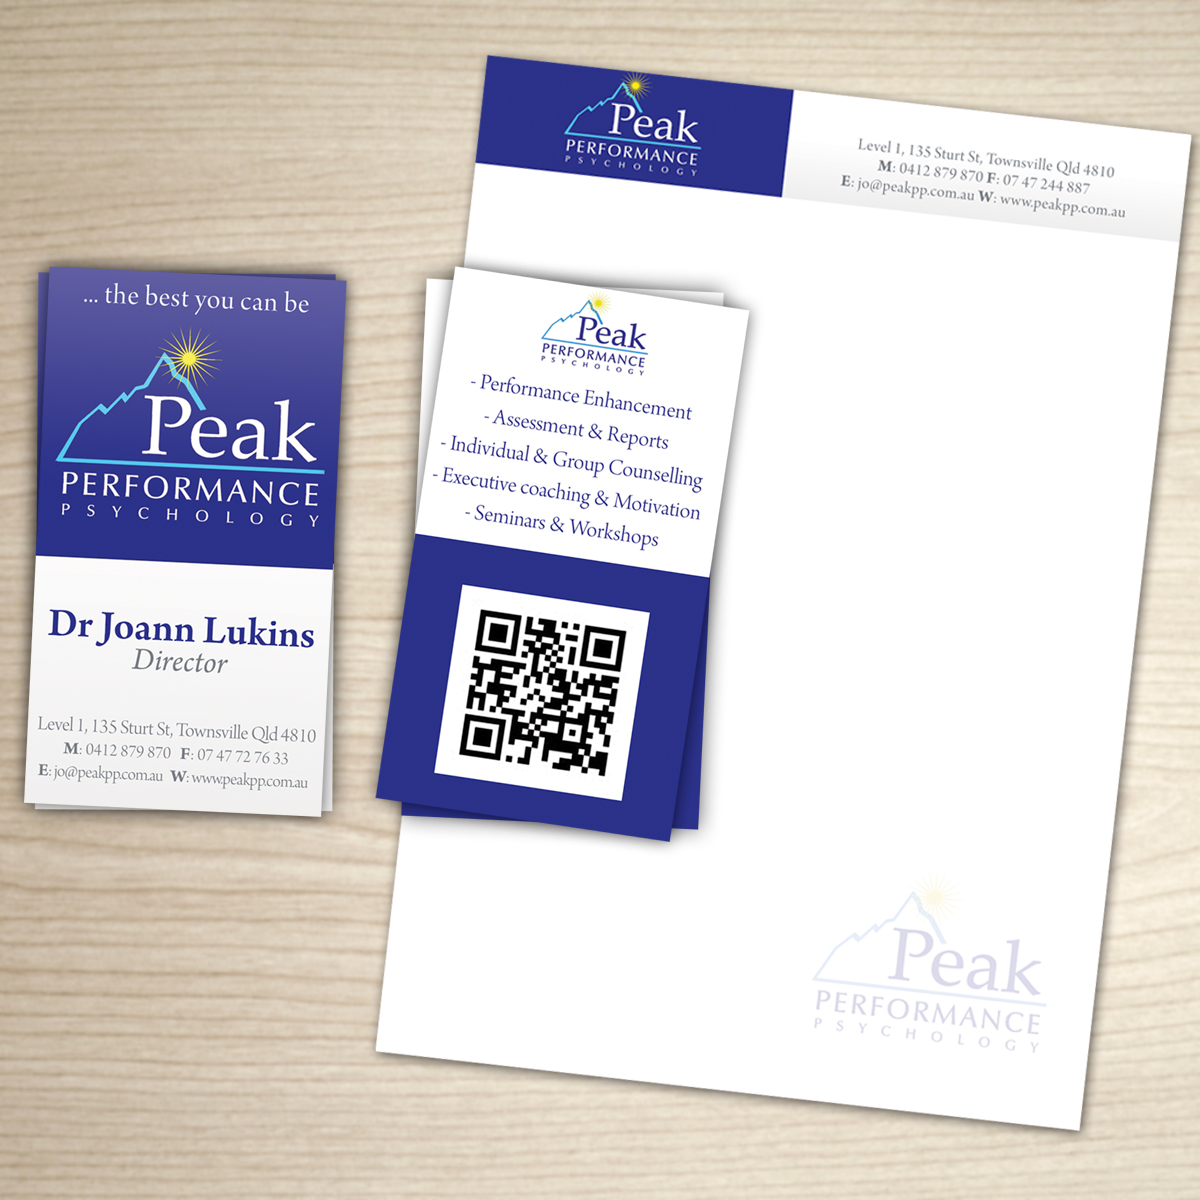 Modern professional business card design for peak performance business card design by noi for performance psychology business card design letterhead design magicingreecefo Choice Image